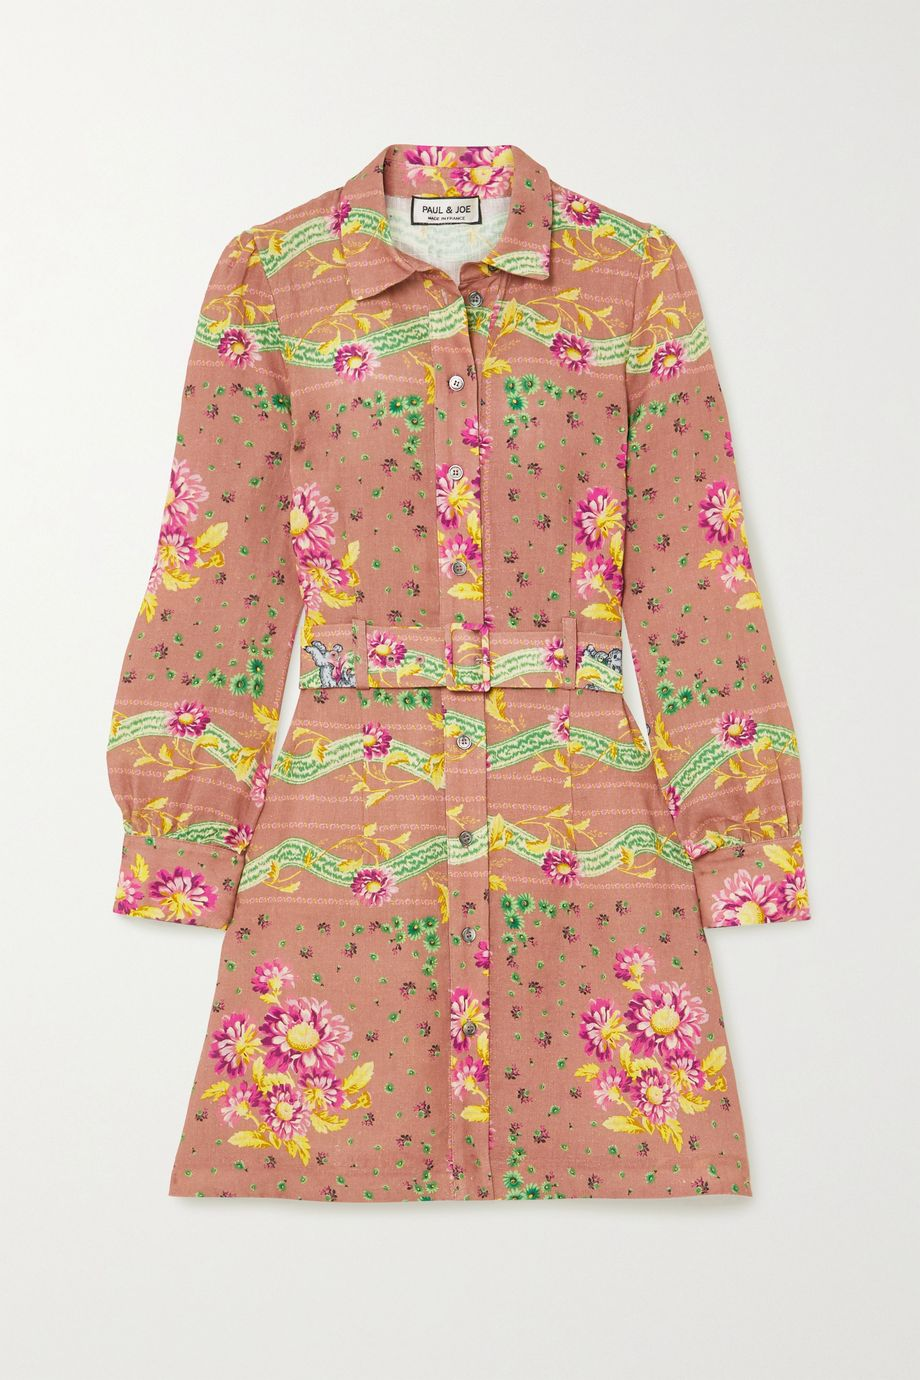 Paul & Joe Belted floral-print linen mini shirt dress